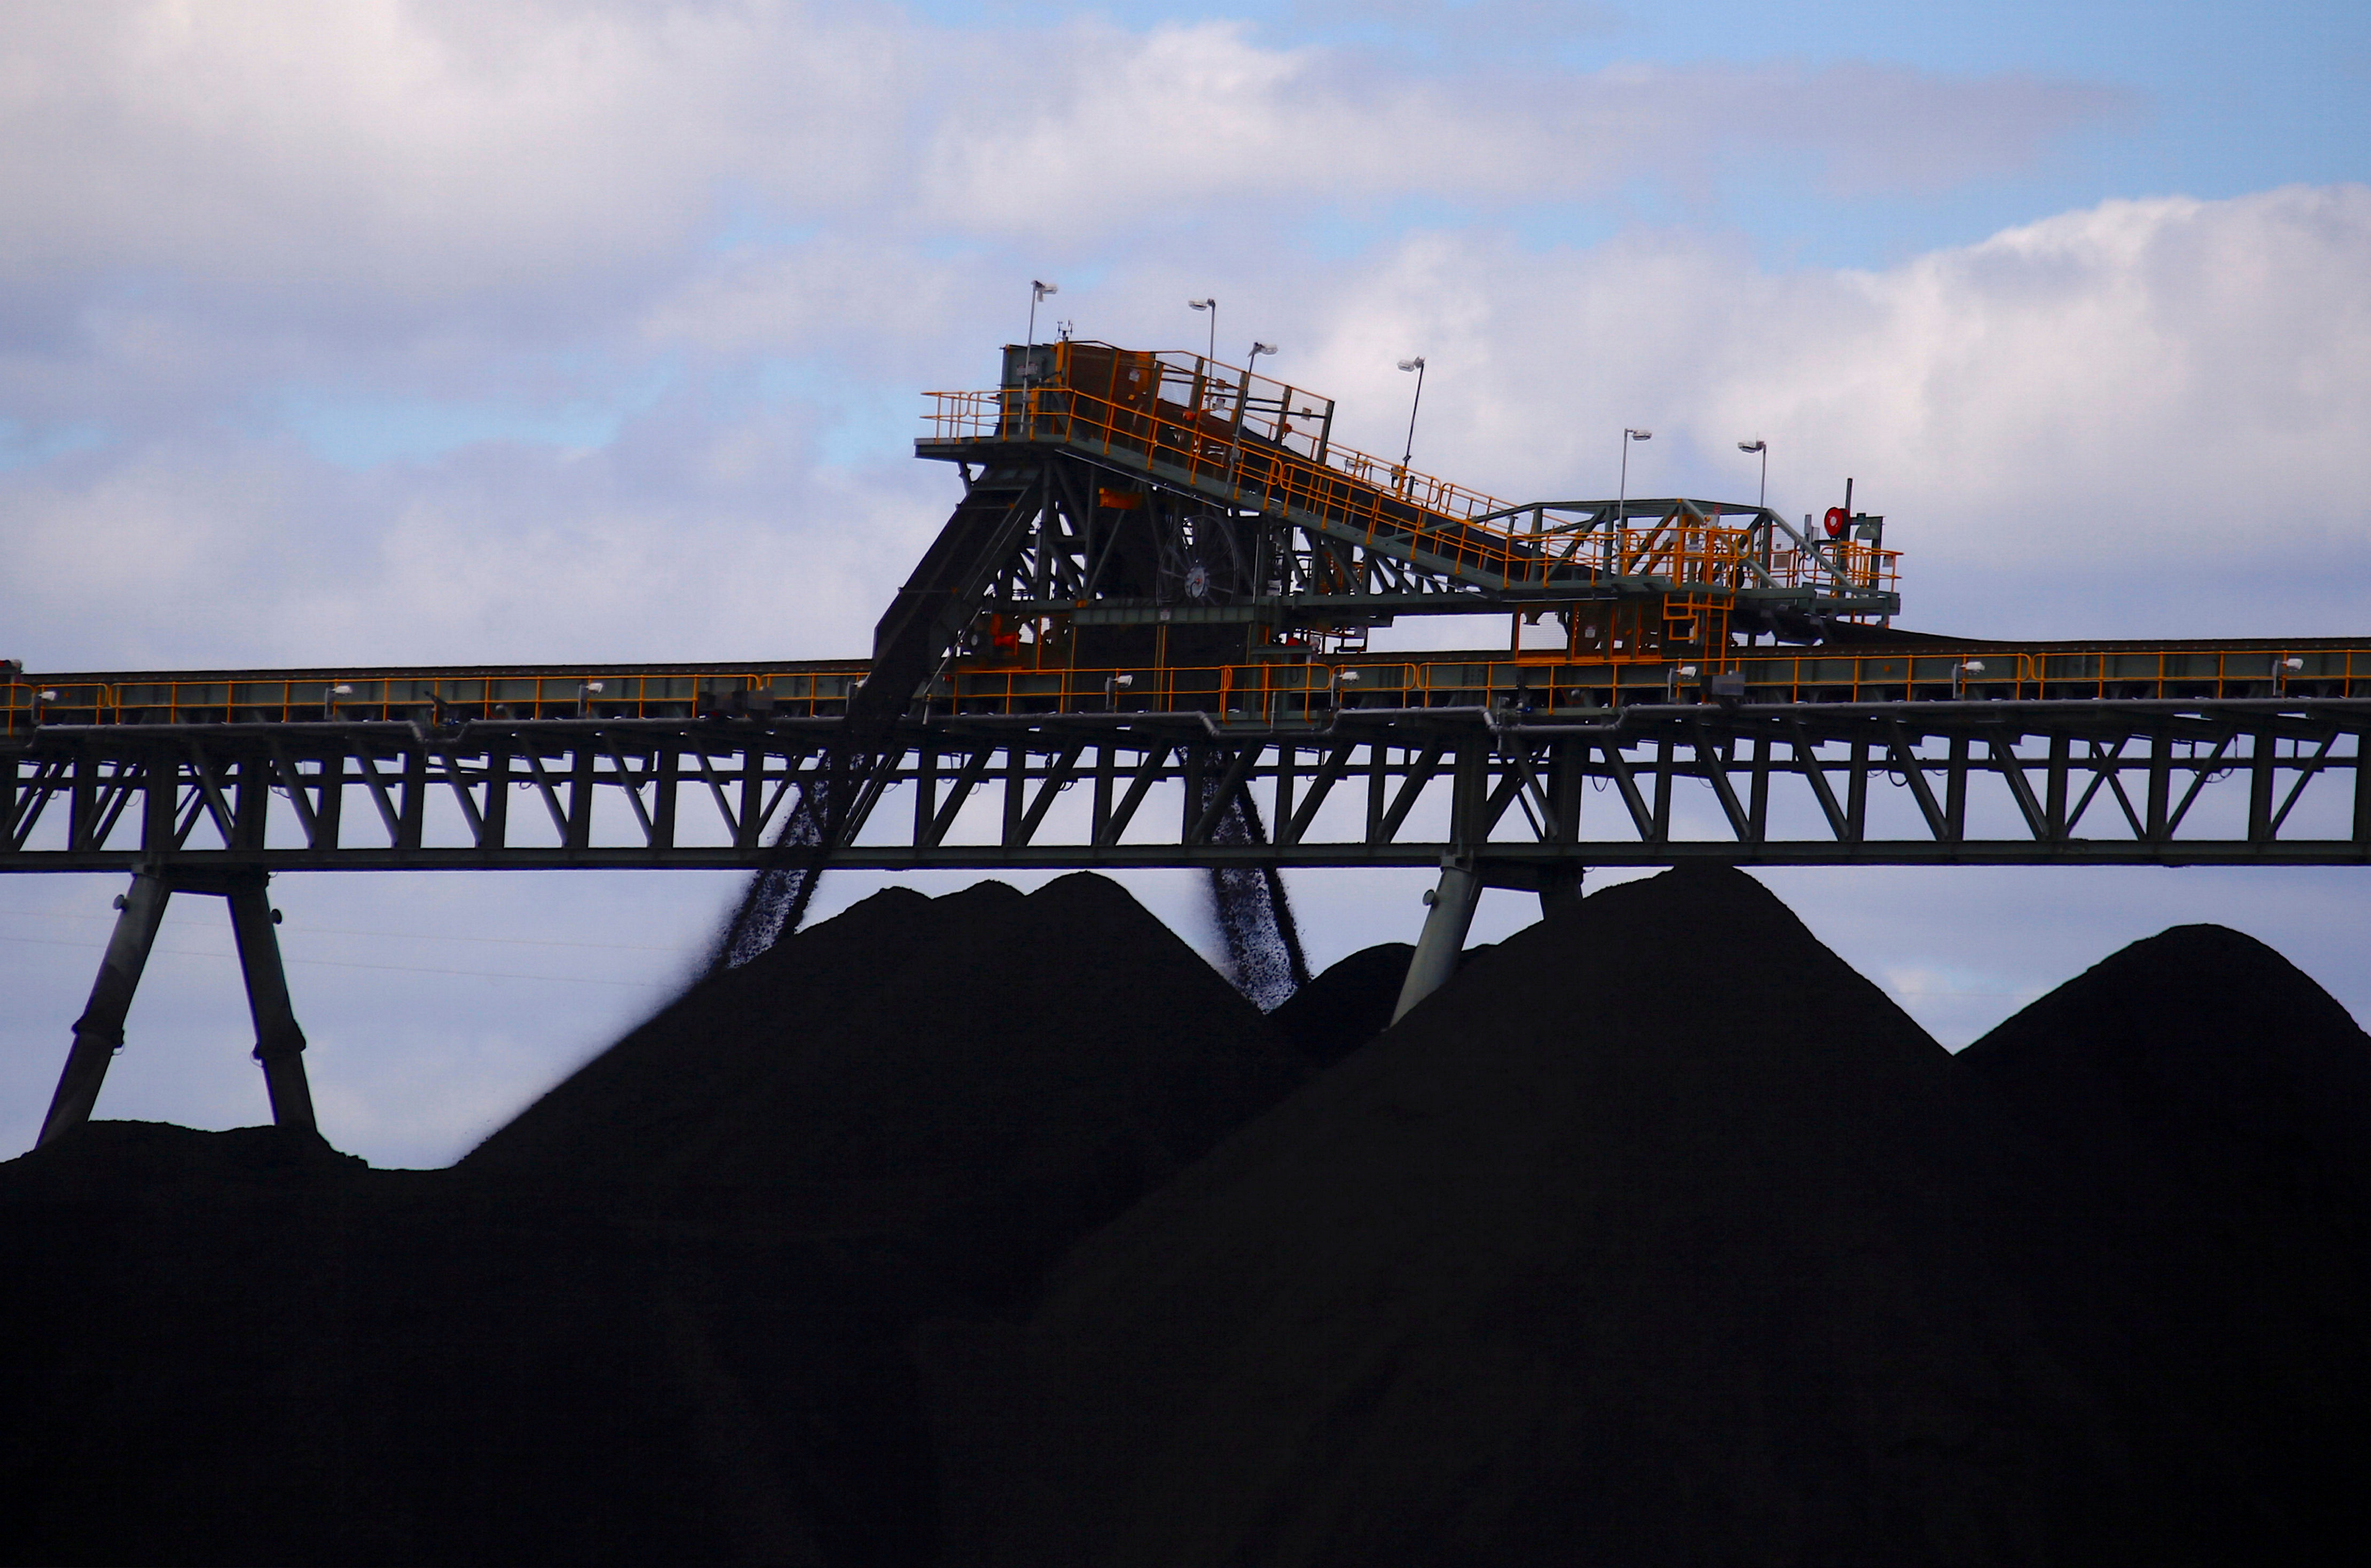 Coal is unloaded onto large piles at the Ulan Coal mines near the central New South Wales rural town of Mudgee in Australia, March 8, 2018. REUTERS/David Gray/File Photo